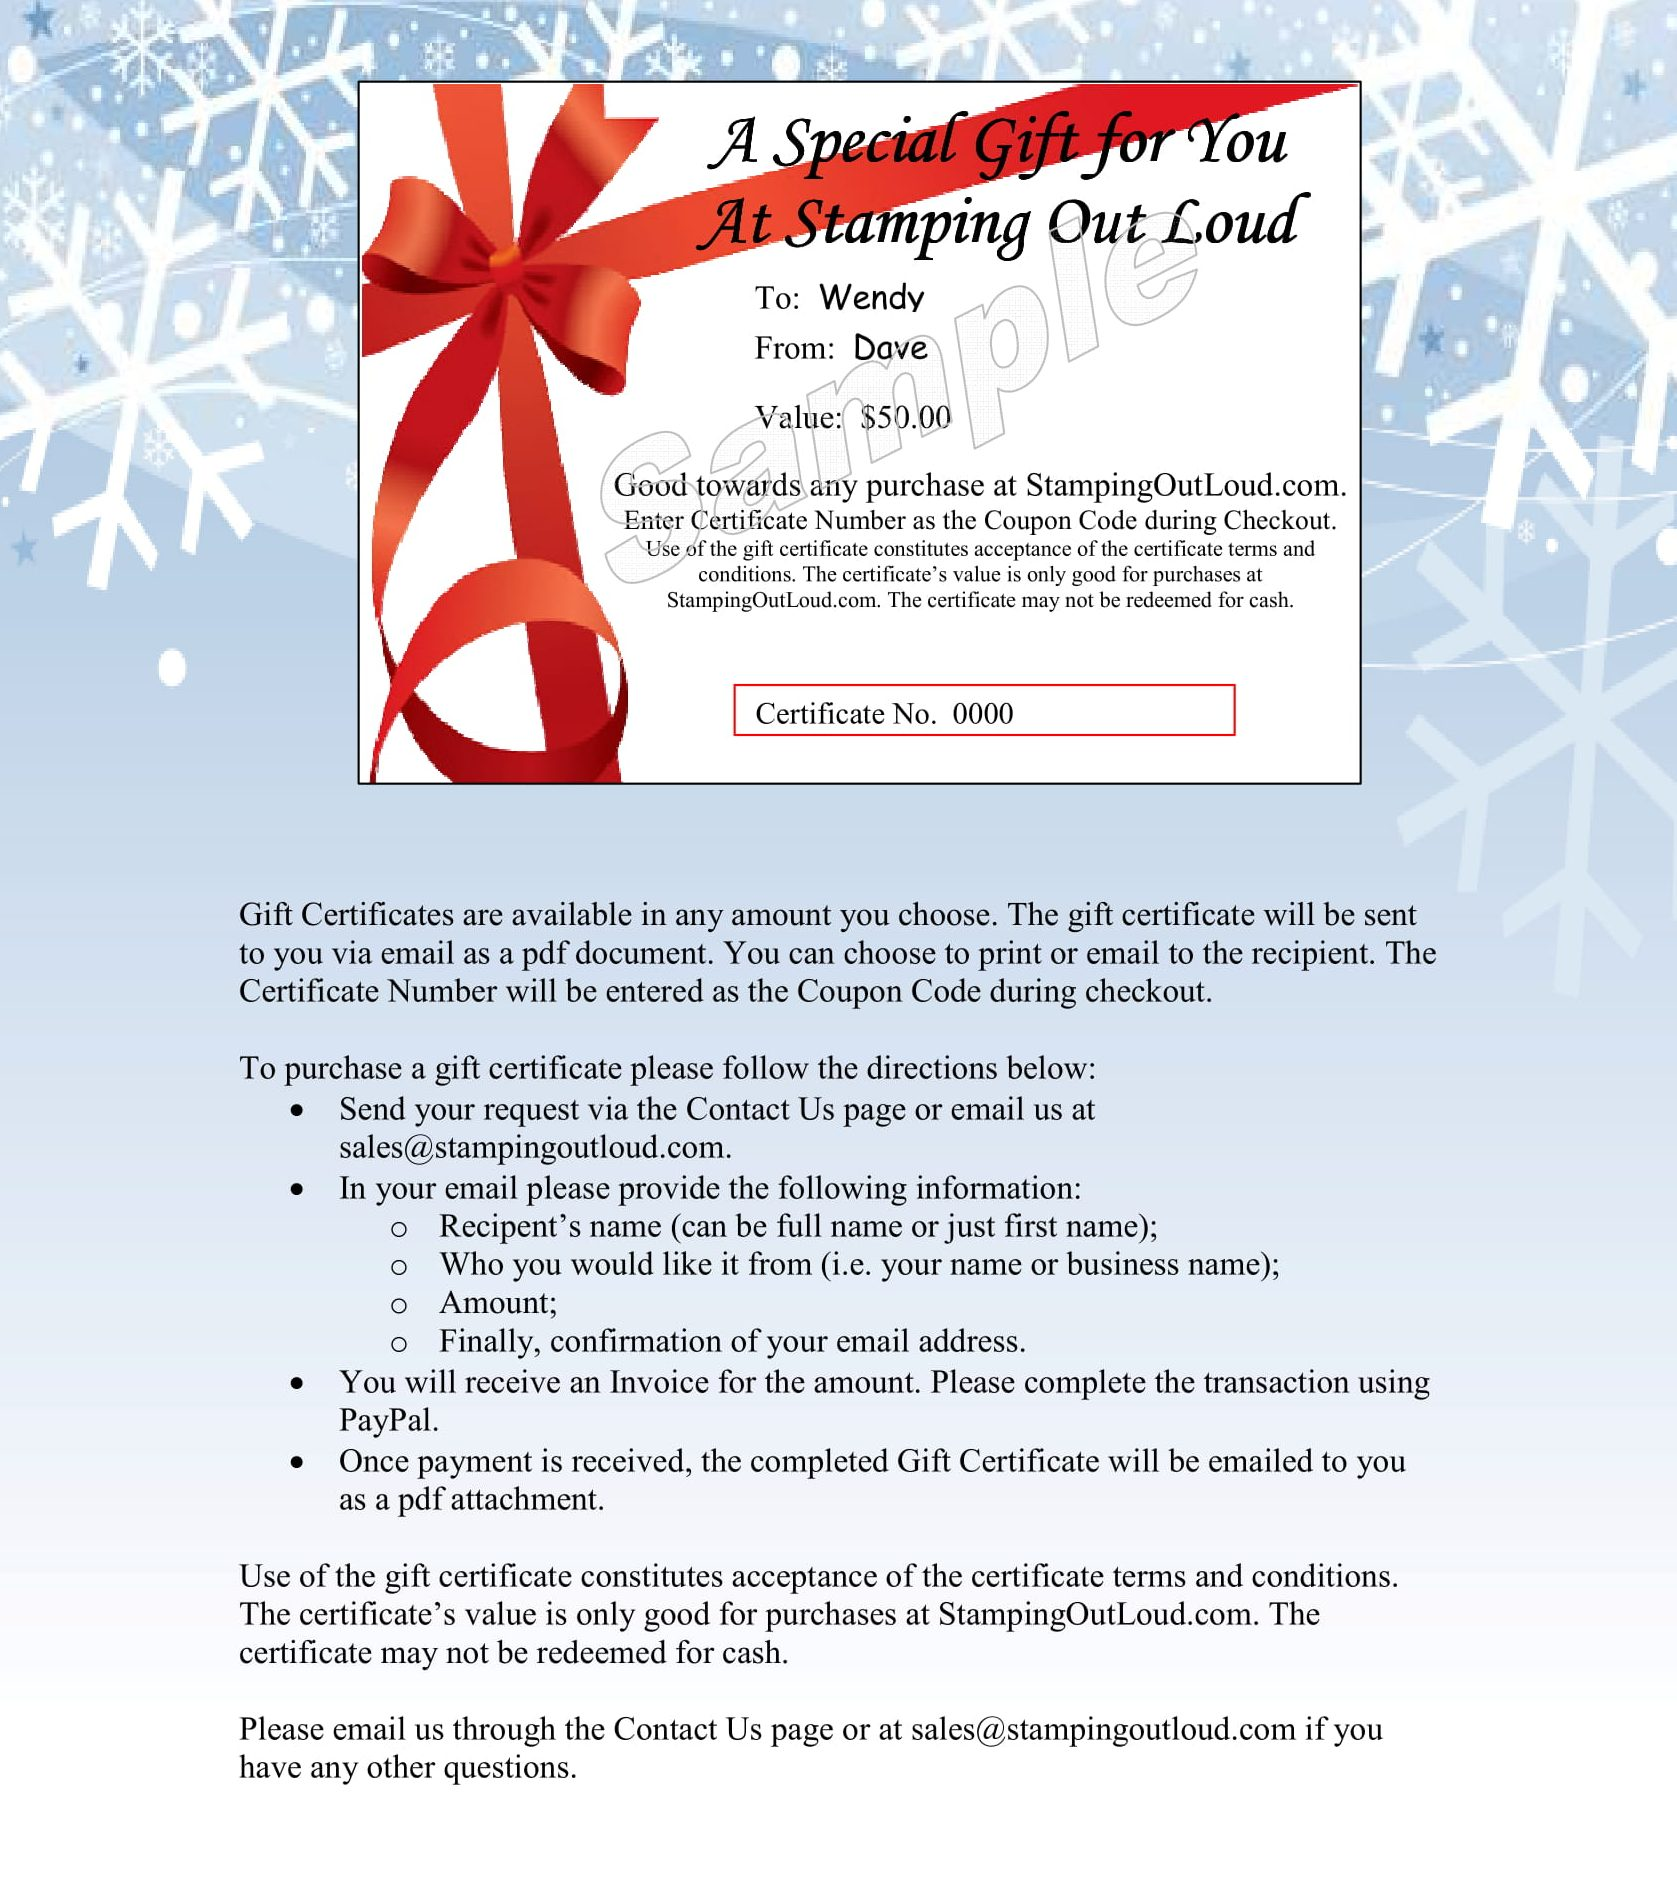 Contact us for further information on Gift Certificates